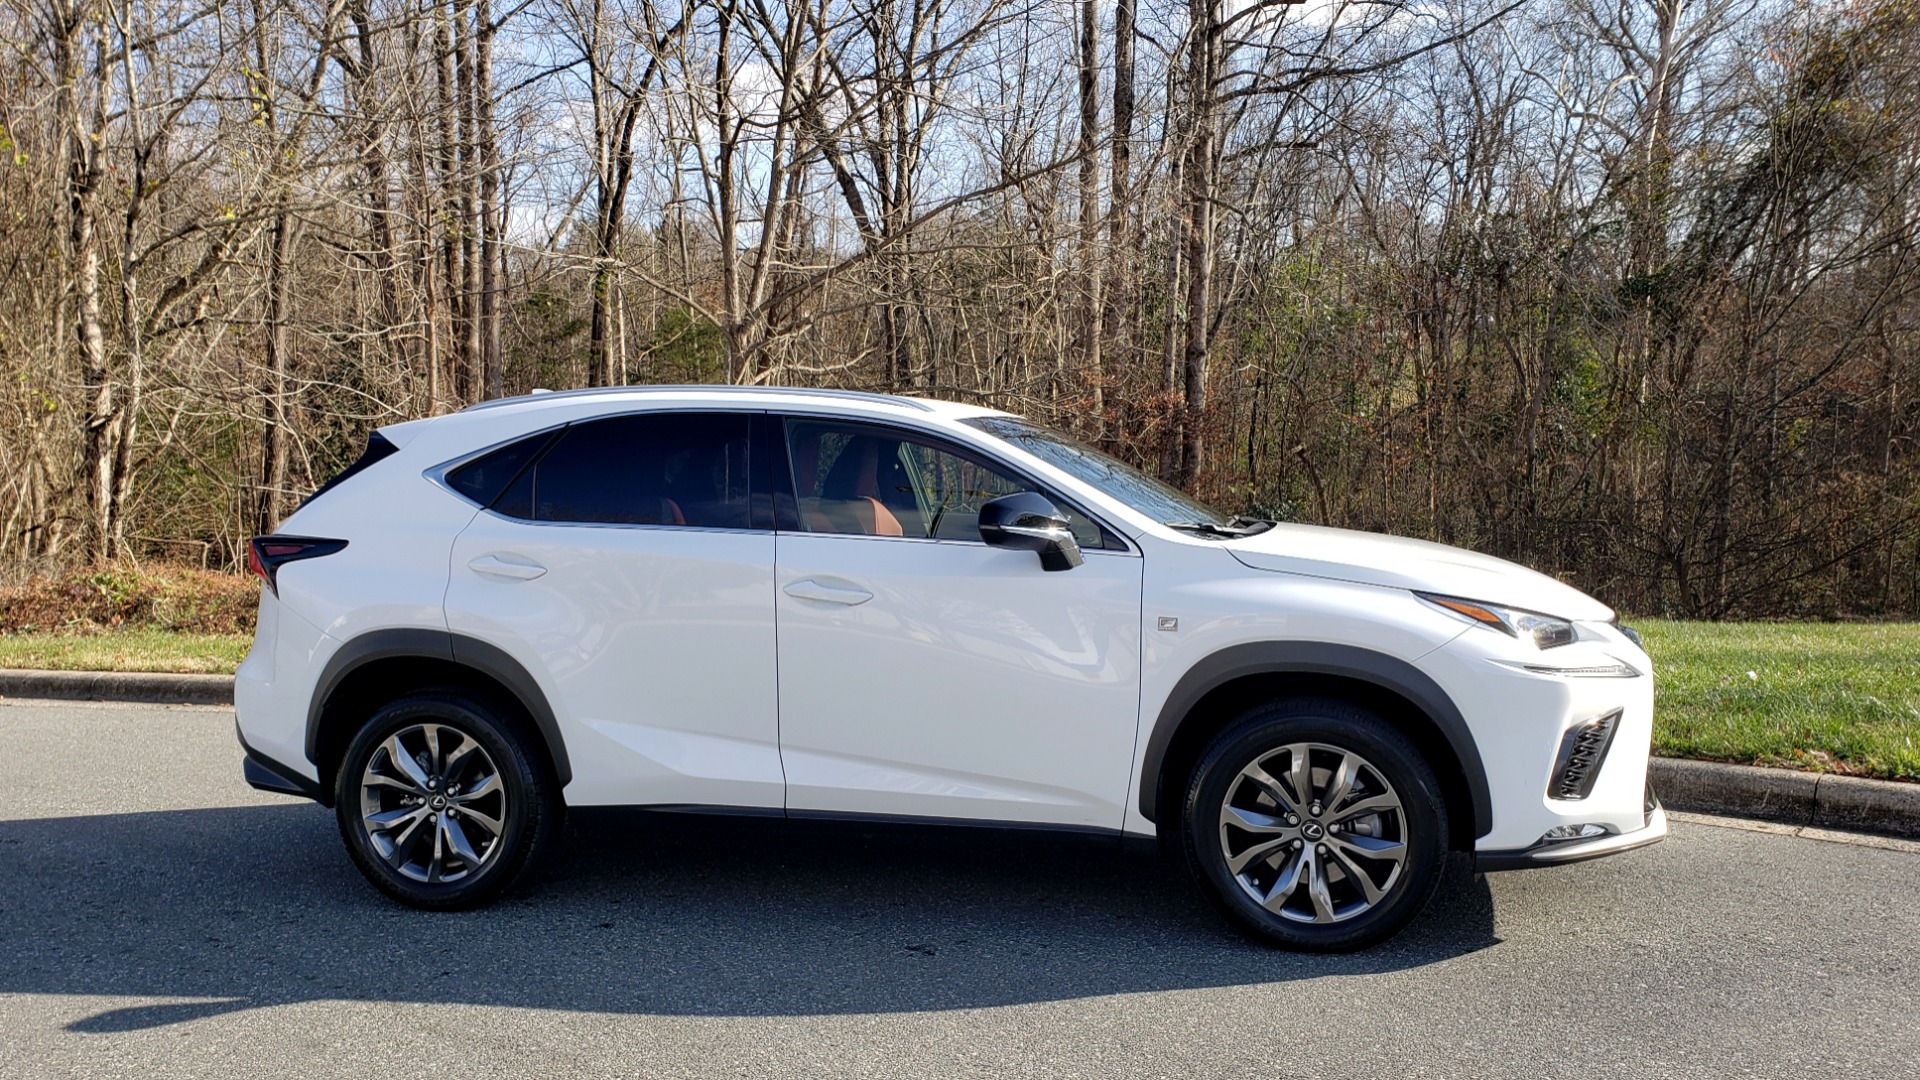 Used 2019 Lexus NX 300 F-SPORT / 2.0L TURBO / LEATHER / 18IN WHEELS / REARVIEW for sale Sold at Formula Imports in Charlotte NC 28227 5